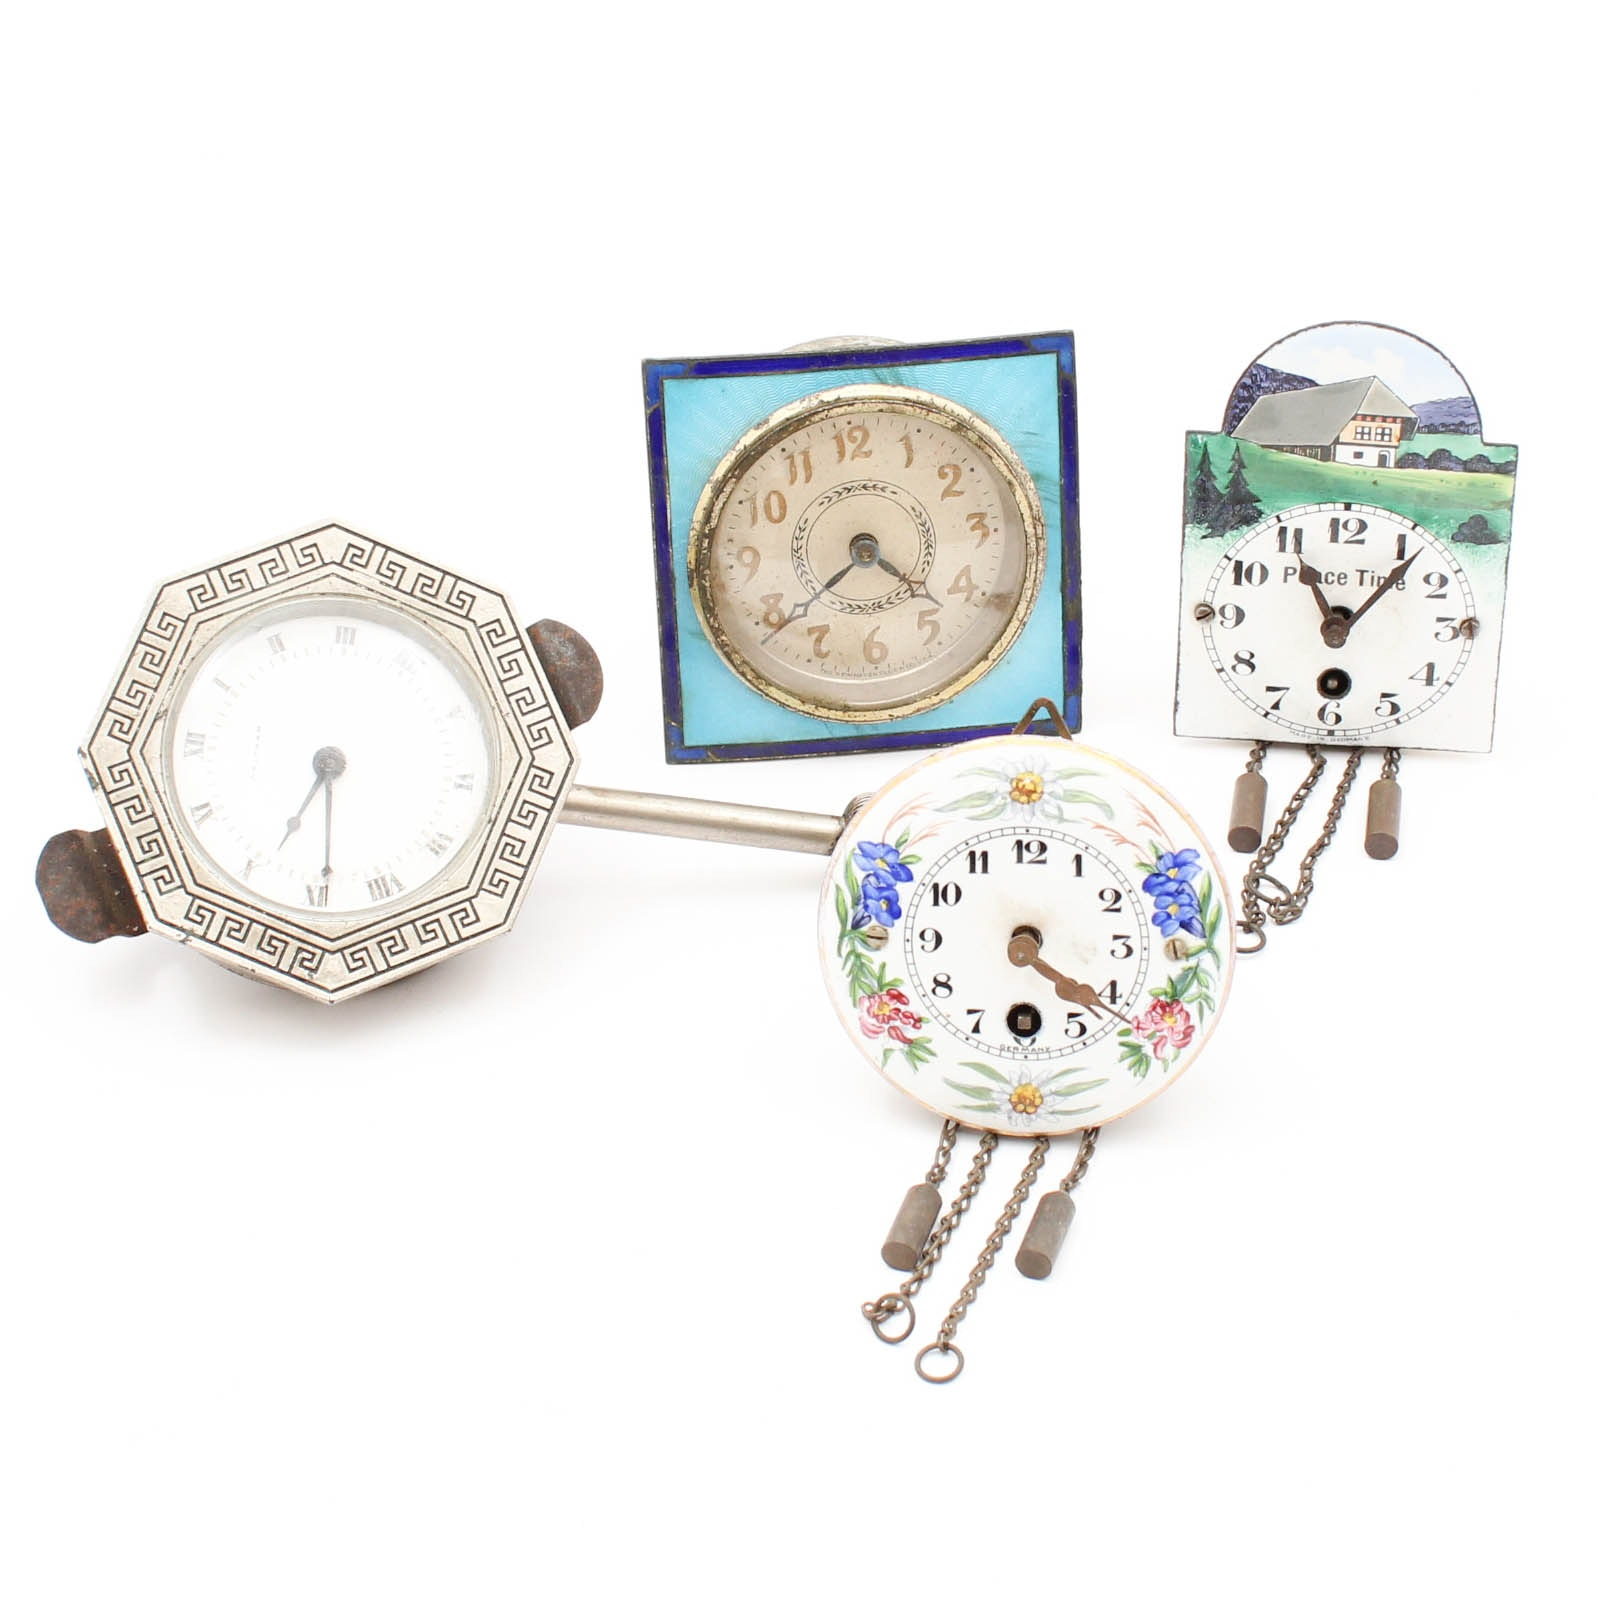 Small Clocks Featuring Waltham and The Newhaven Clock Co.